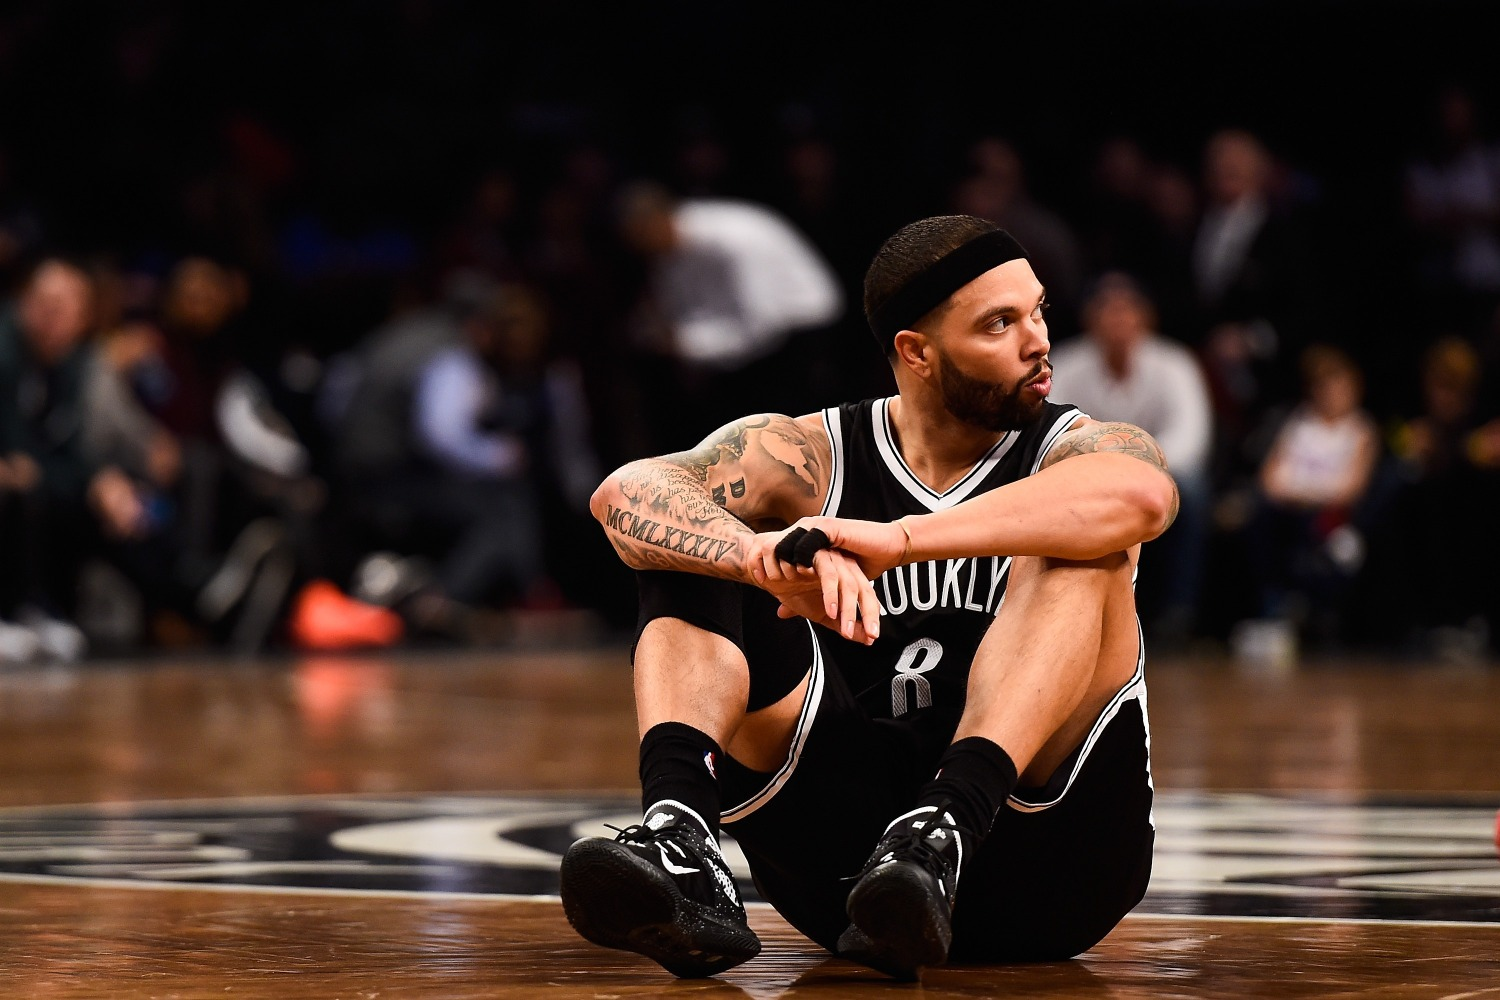 Deron Williams made a ton of money from the Nets to never play for them again.